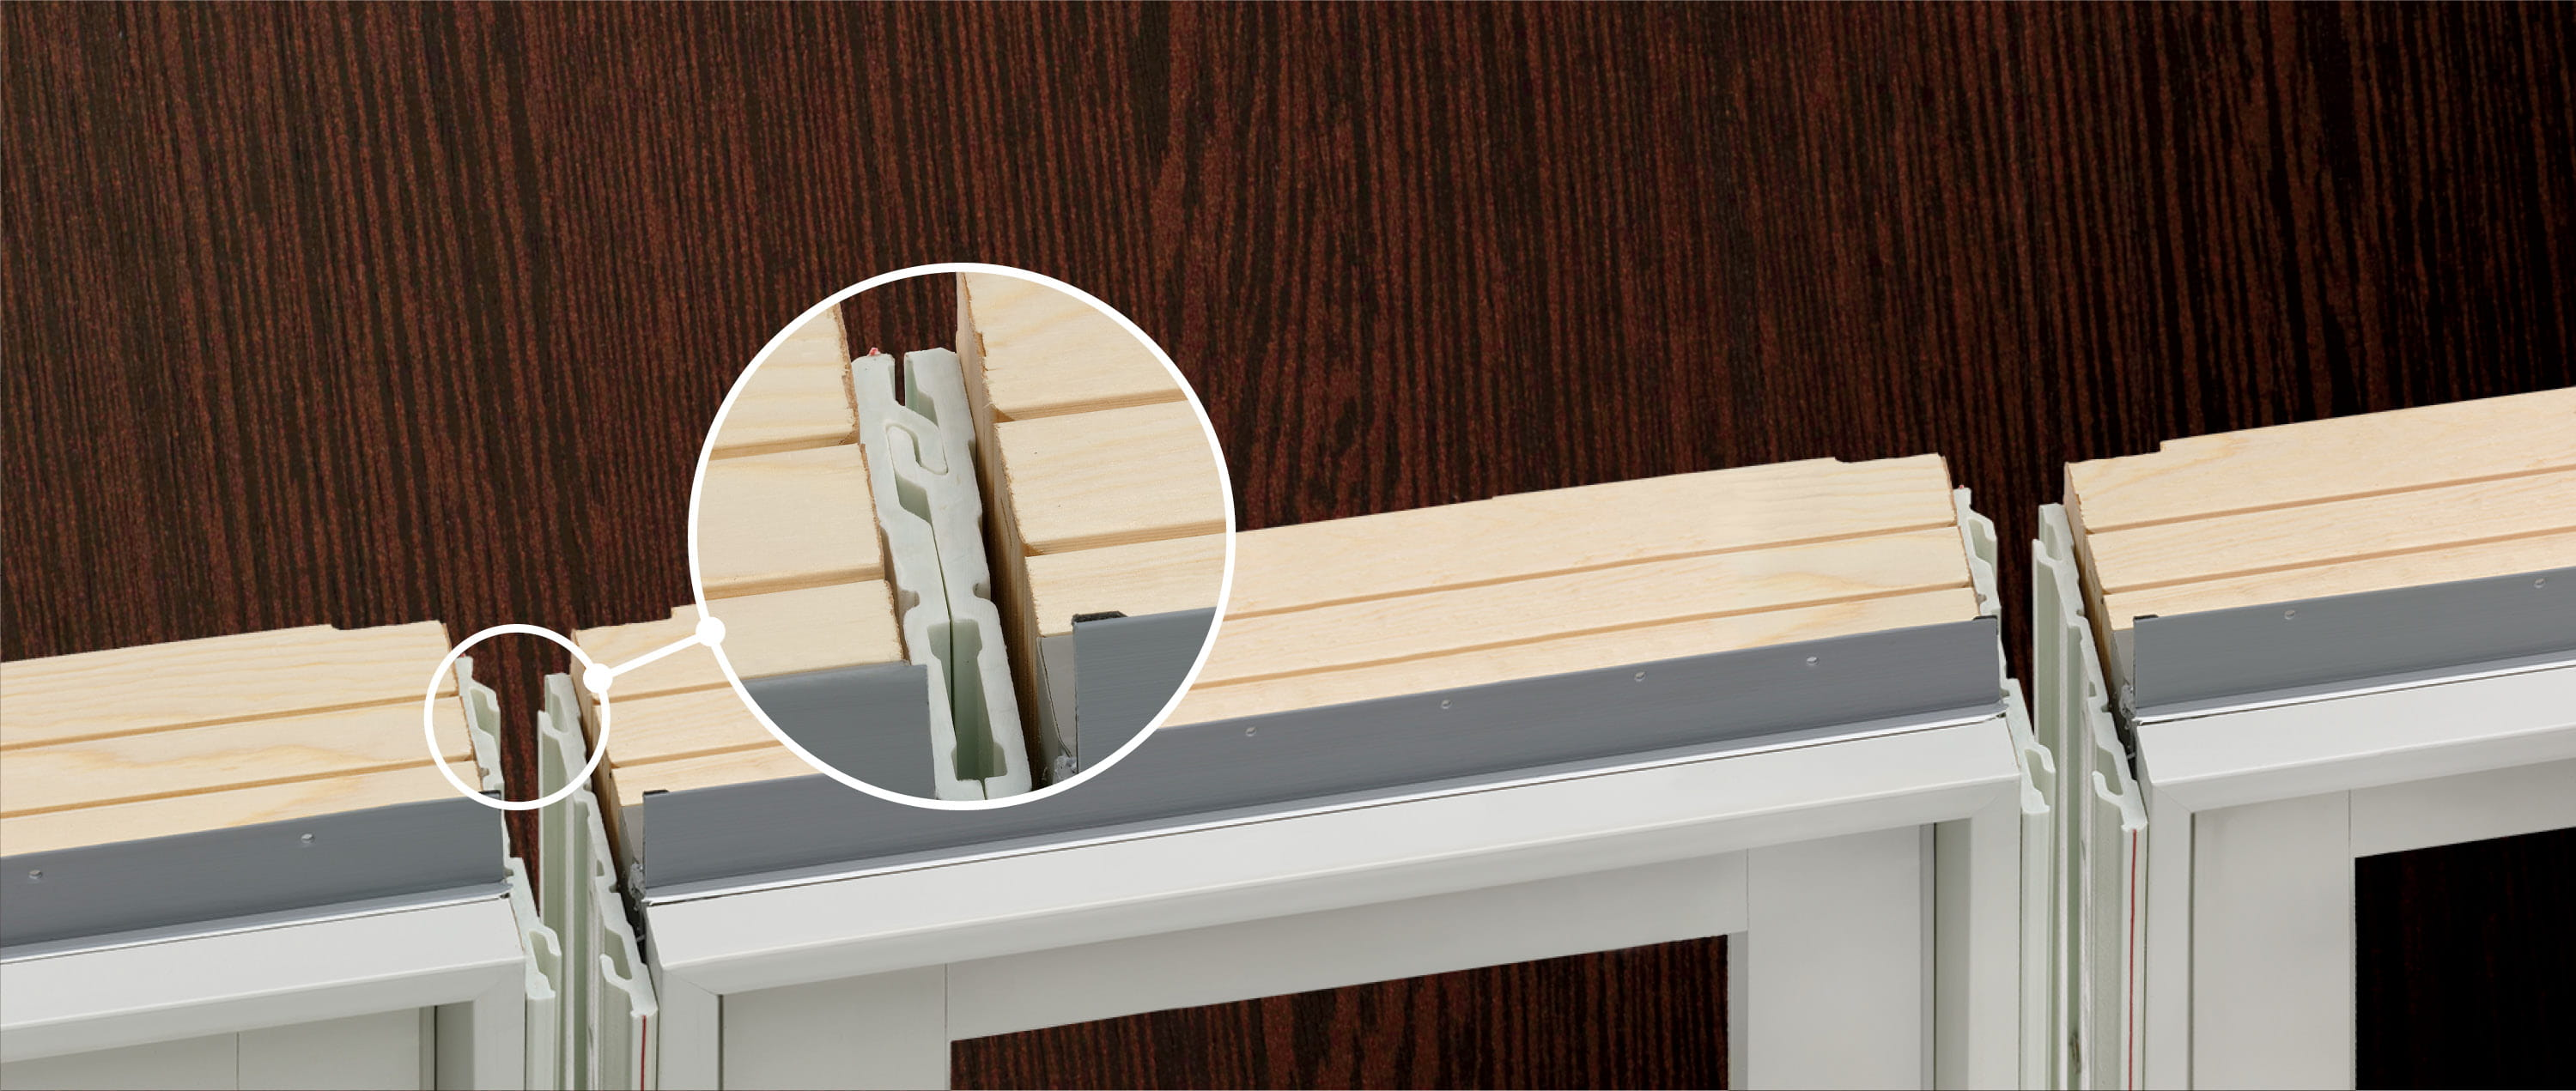 Andersen Windows, Inc. is making it easier for builders to install the variety of large window combinations homeowners desire with its new Easy Connect Joining System for Andersen® A-Series windows.